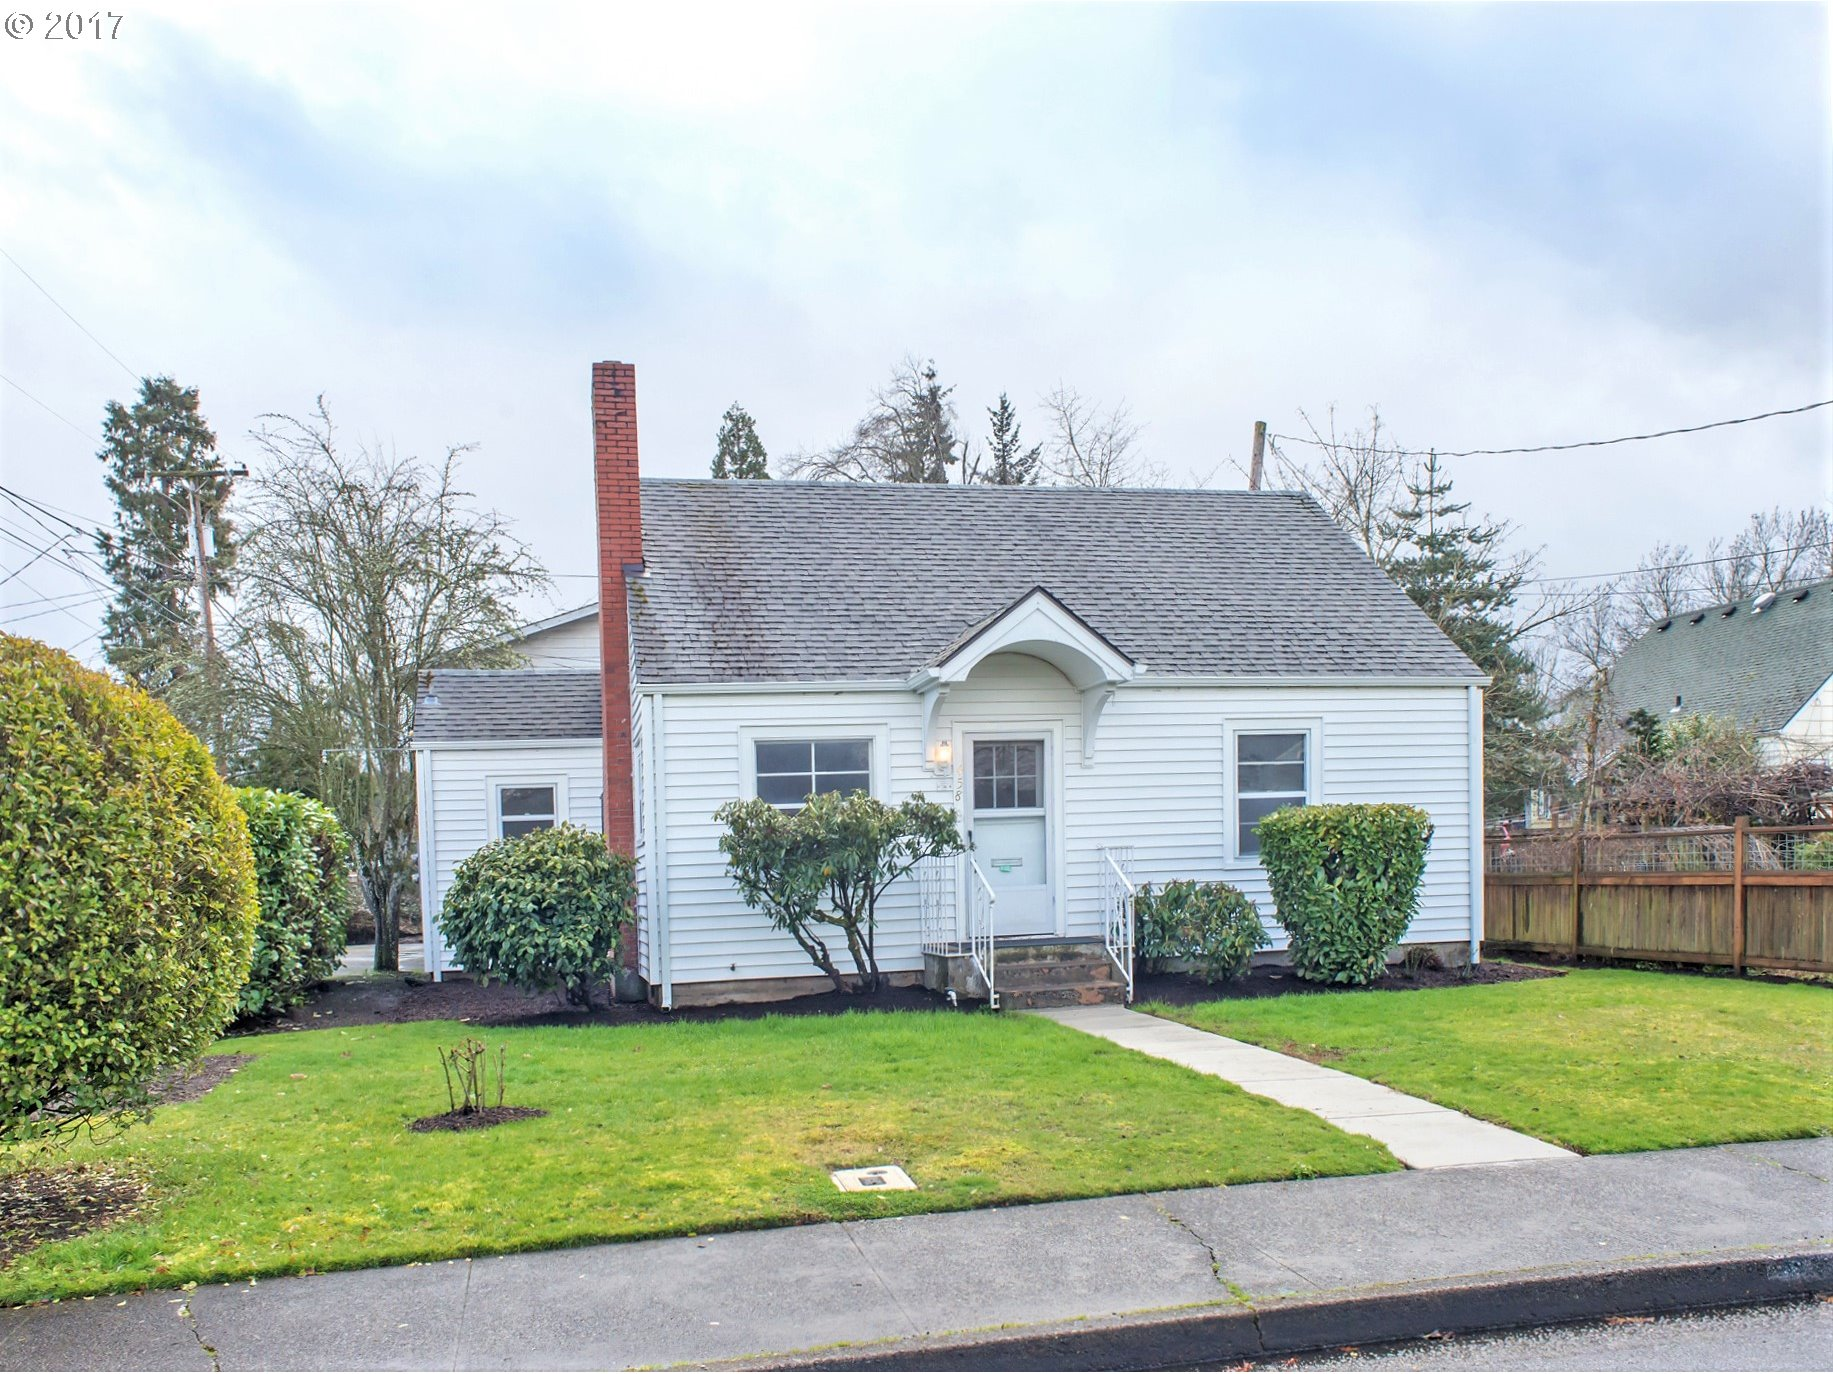 458 W 15TH AVE, Eugene, OR 97401